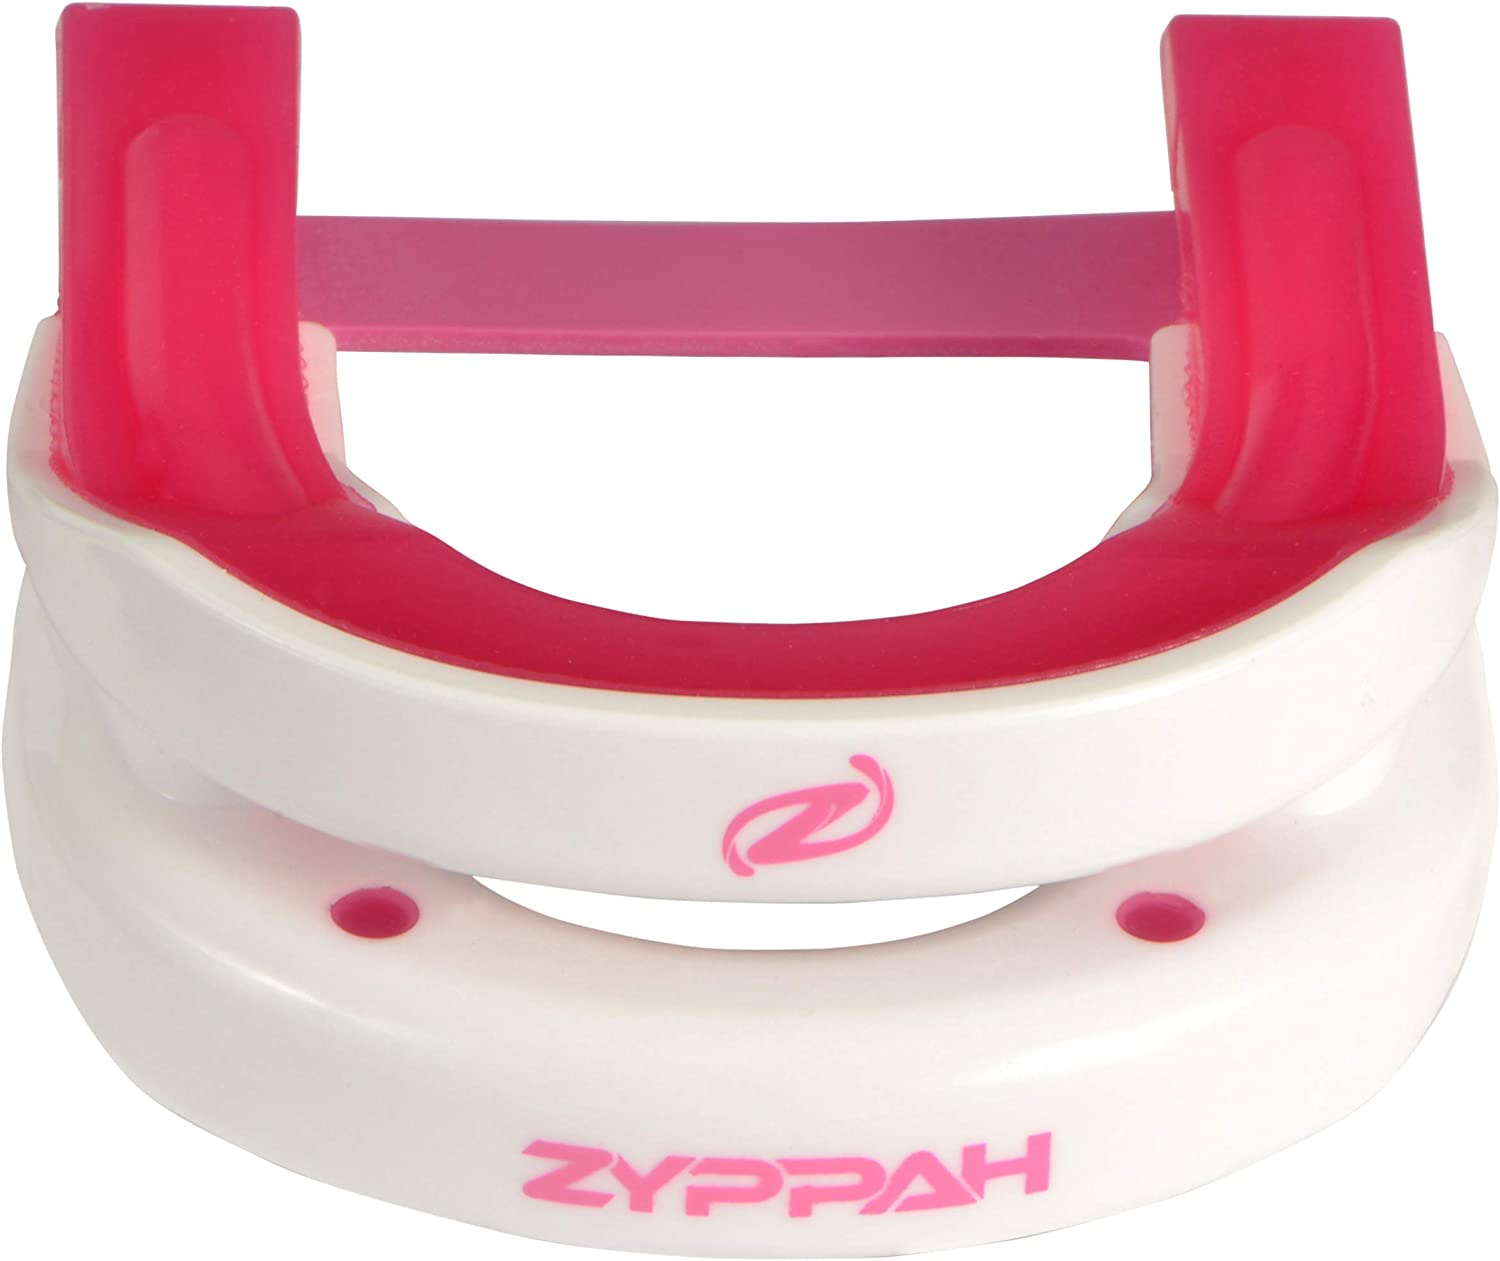 ZYPPAH Anti Snoring Hybrid Oral Appliance Mouthpiece Stop Snoring Sleep Aid Solution Snore Stopper Mouth Guard Device - Made in USA, FDA Cleared - Pink